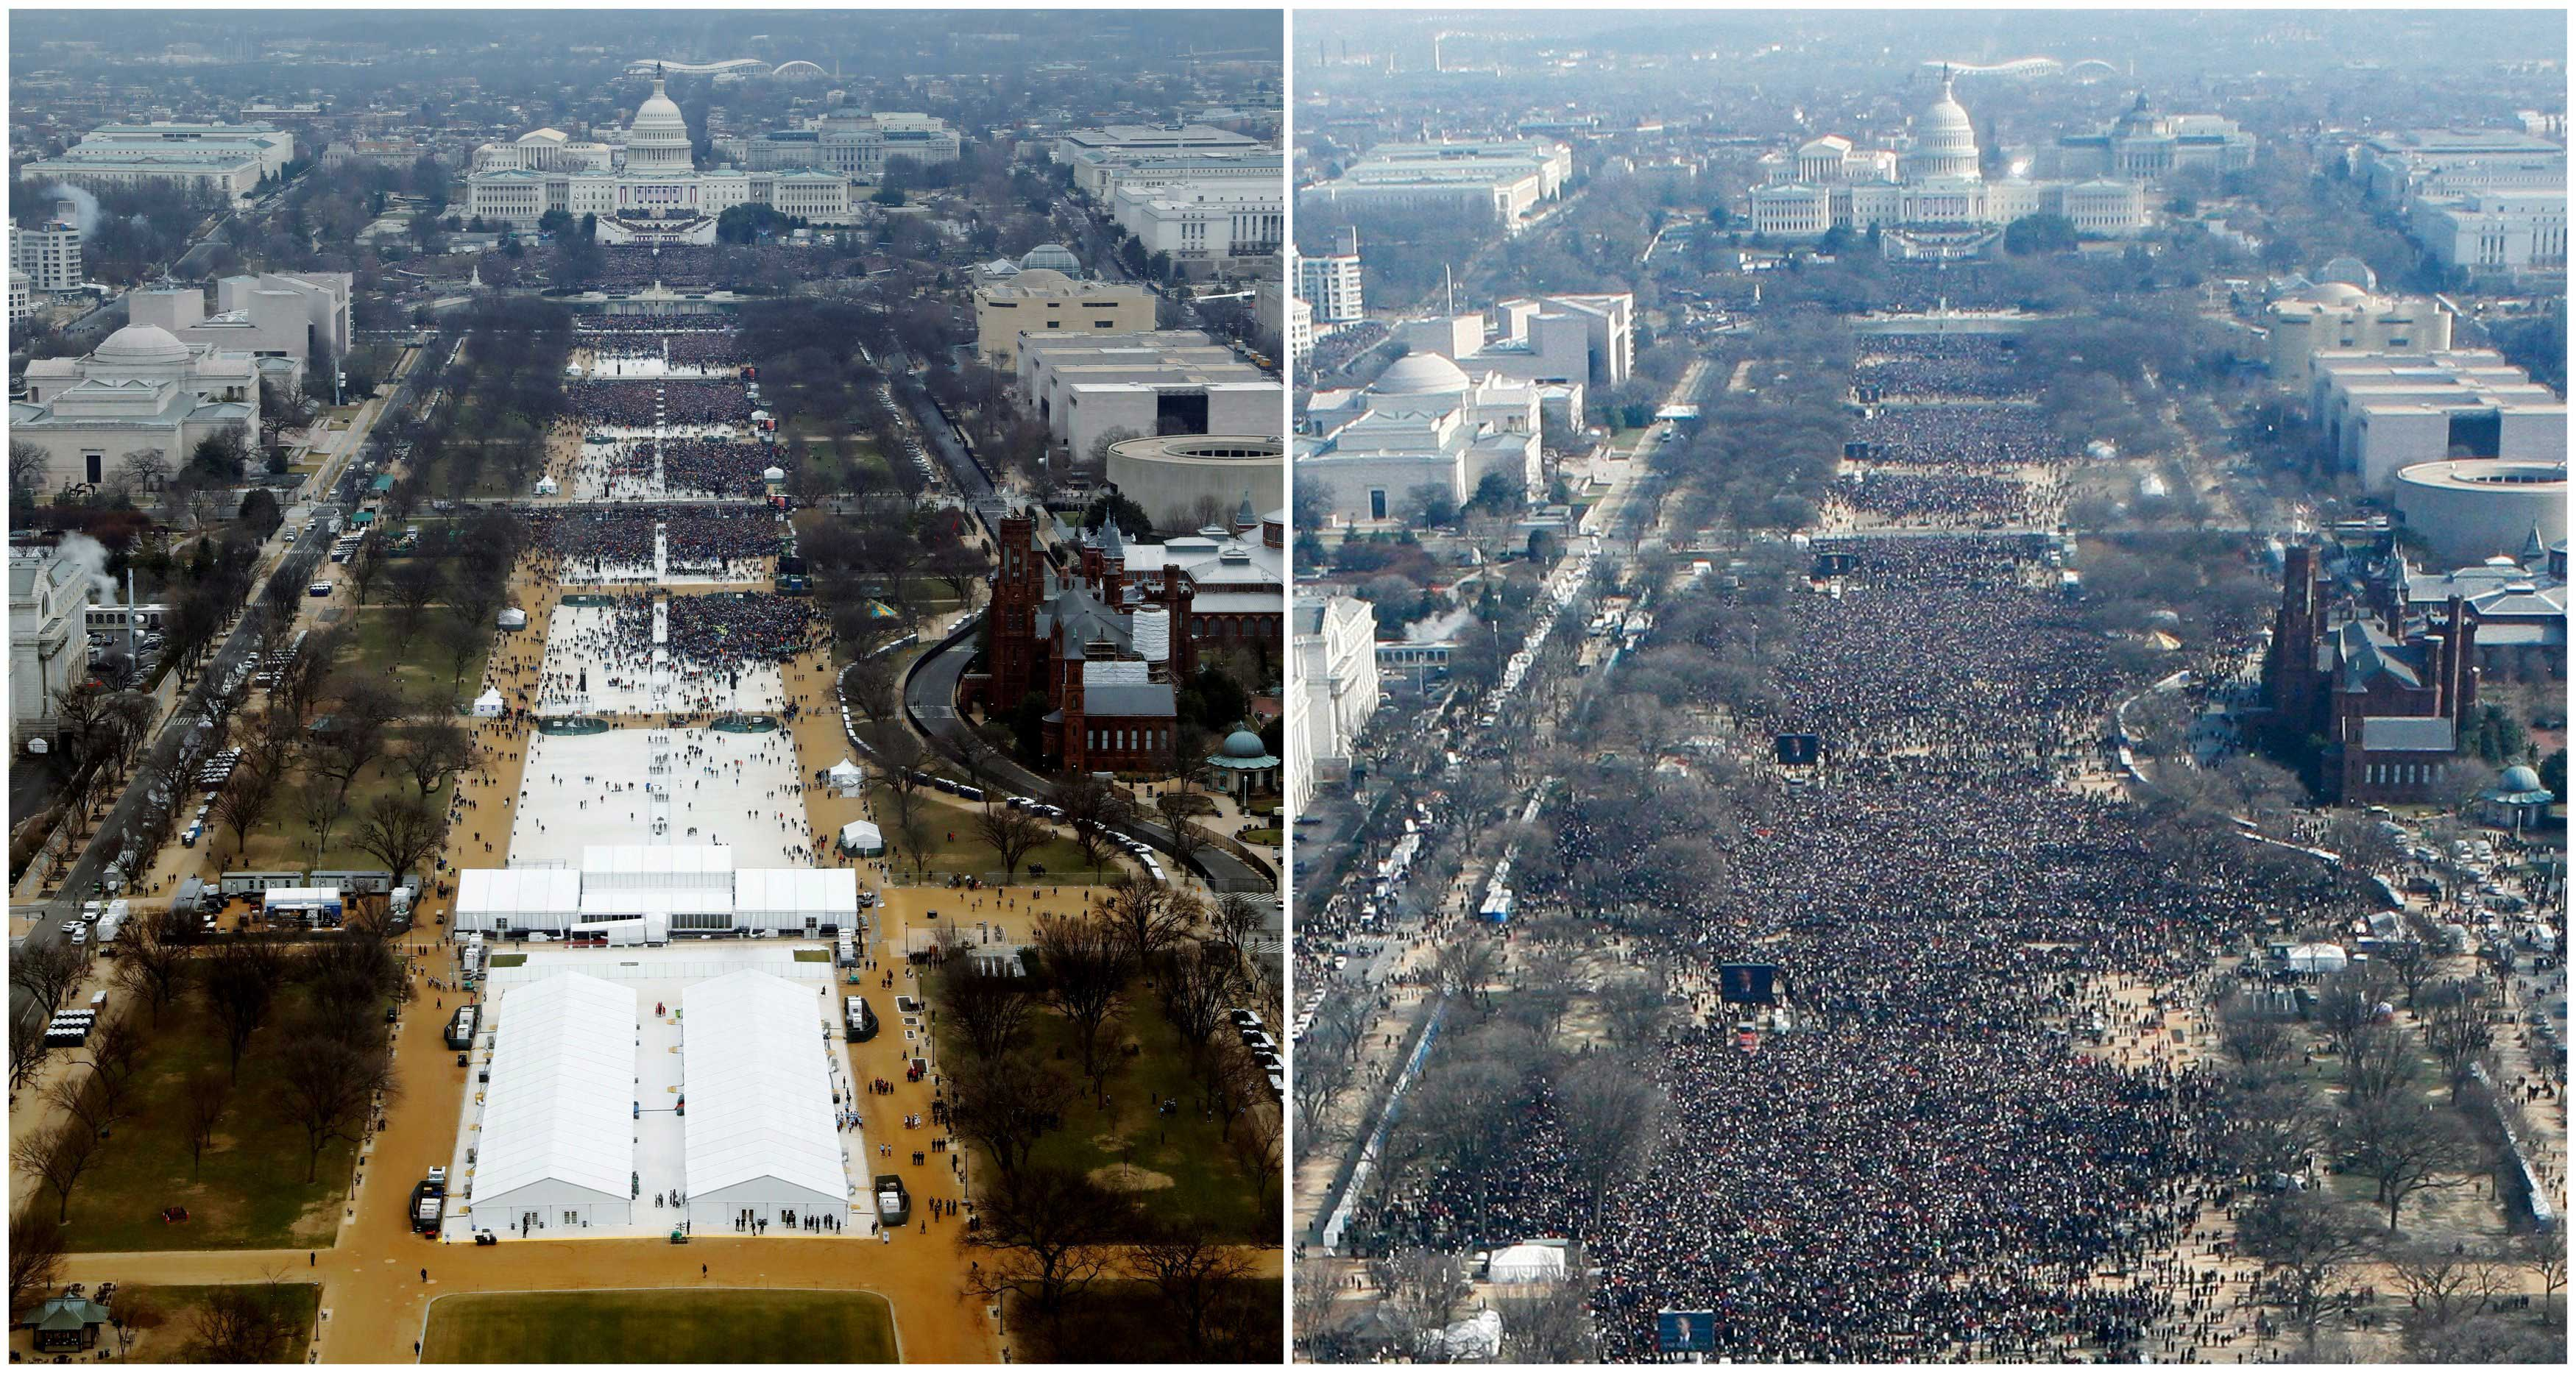 A combination of photos taken at the National Mall shows the crowds attending the inauguration ceremonies to swear in U.S. President Donald Trump at 12:01pm (L) on Jan. 20, 2017 and President Barack Obama sometime between 12:07pm and 12:26pm on Jan. 20, 2009, in Washington, D.C.